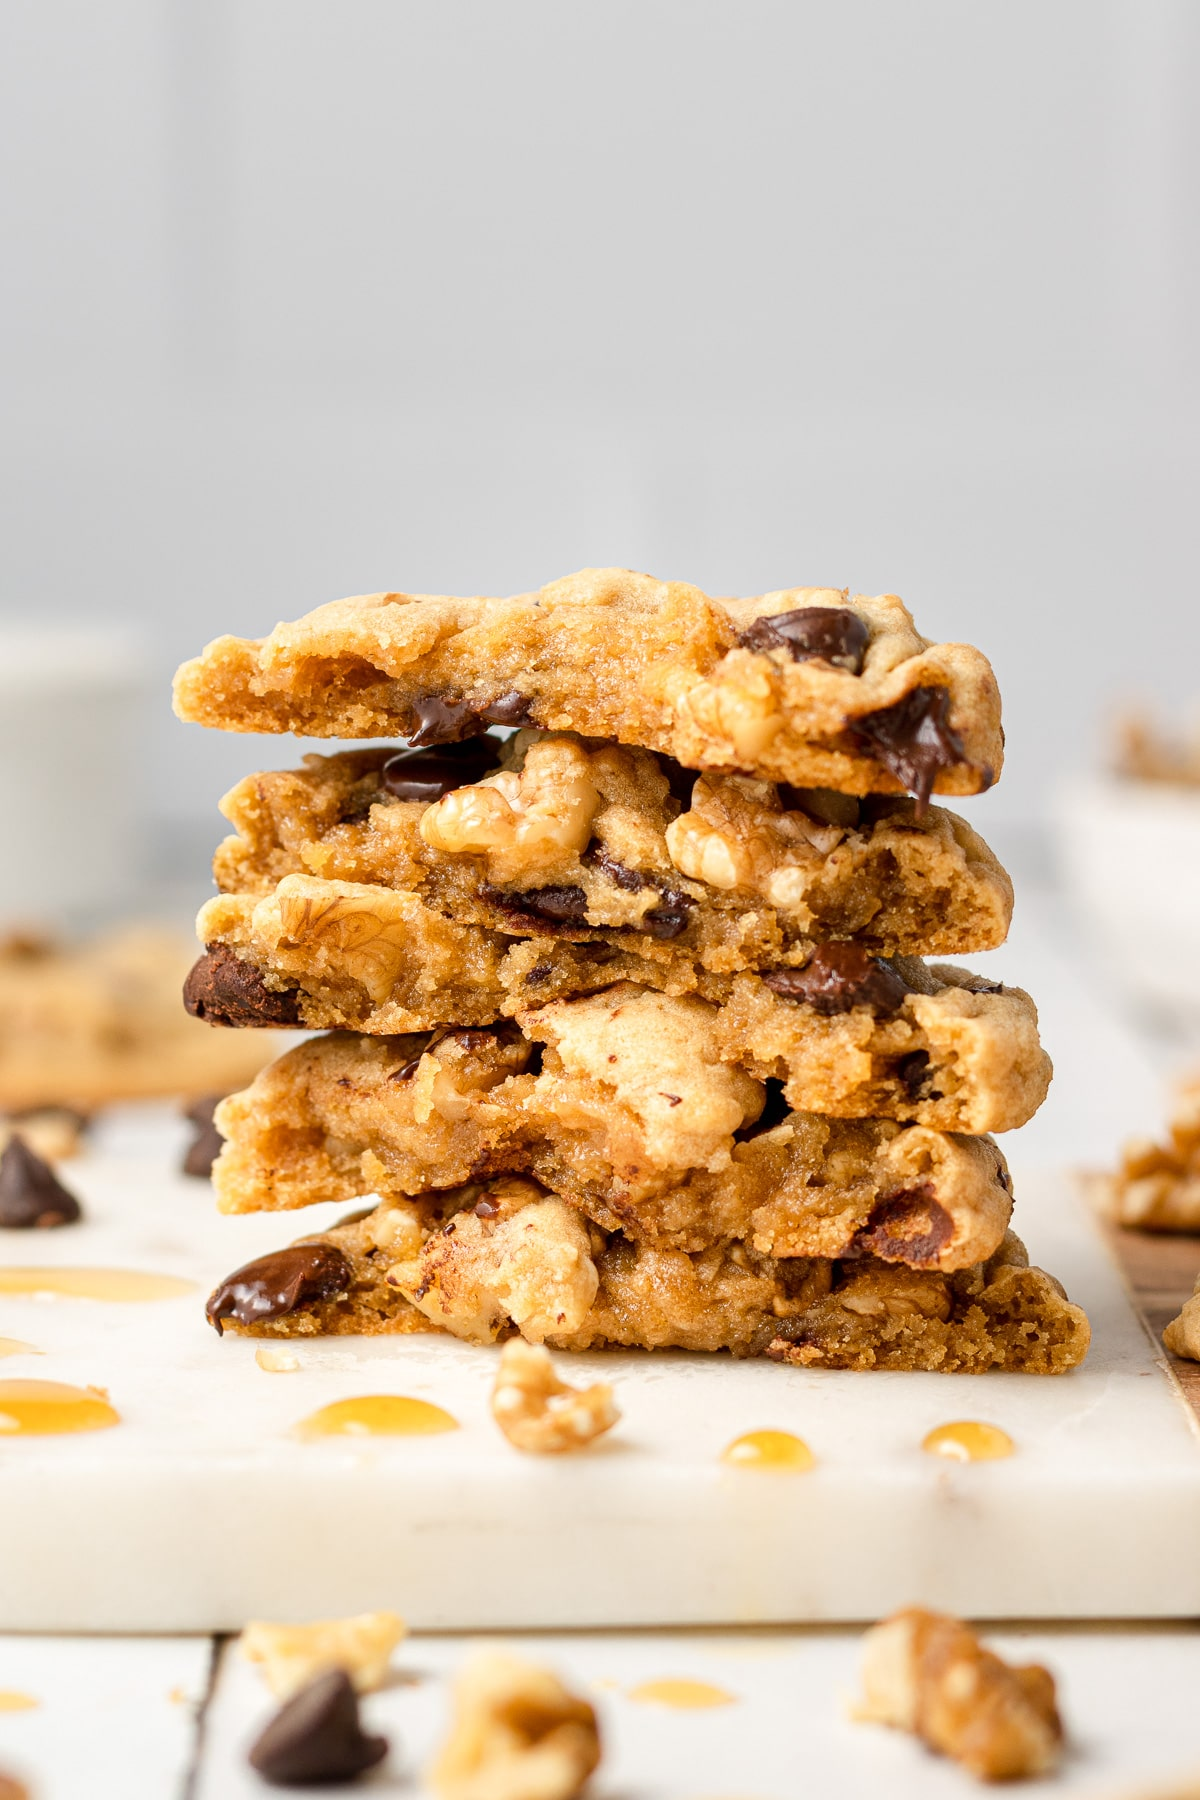 maple chocolate chip cookies stacked on each other